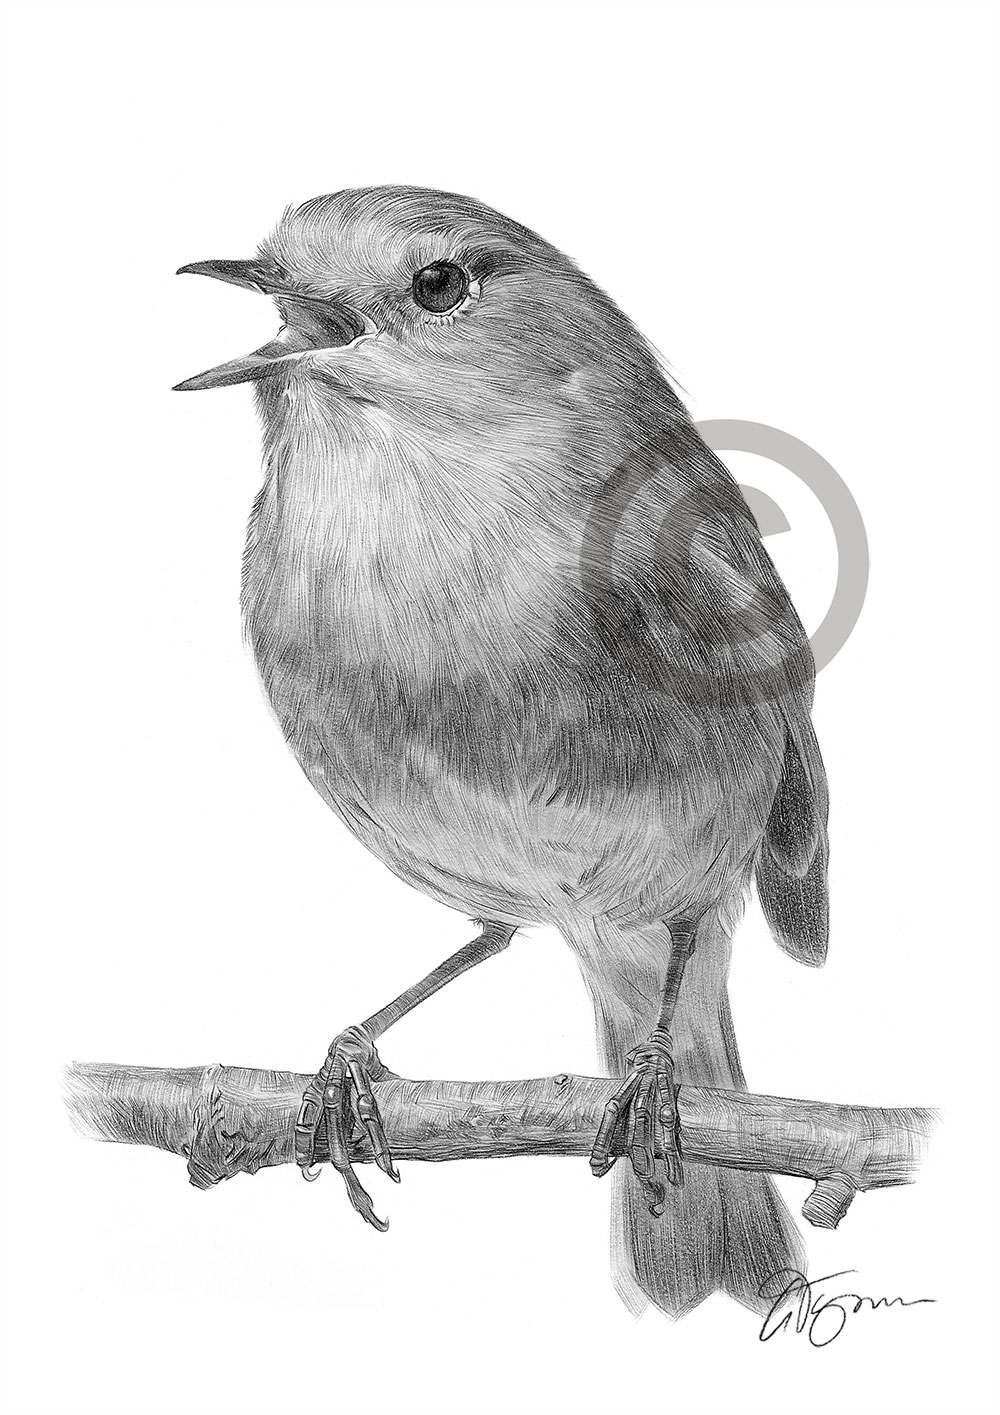 Uncategorized Robin Drawing robin redbreast bird pencil drawing art print a4 only signed drawing